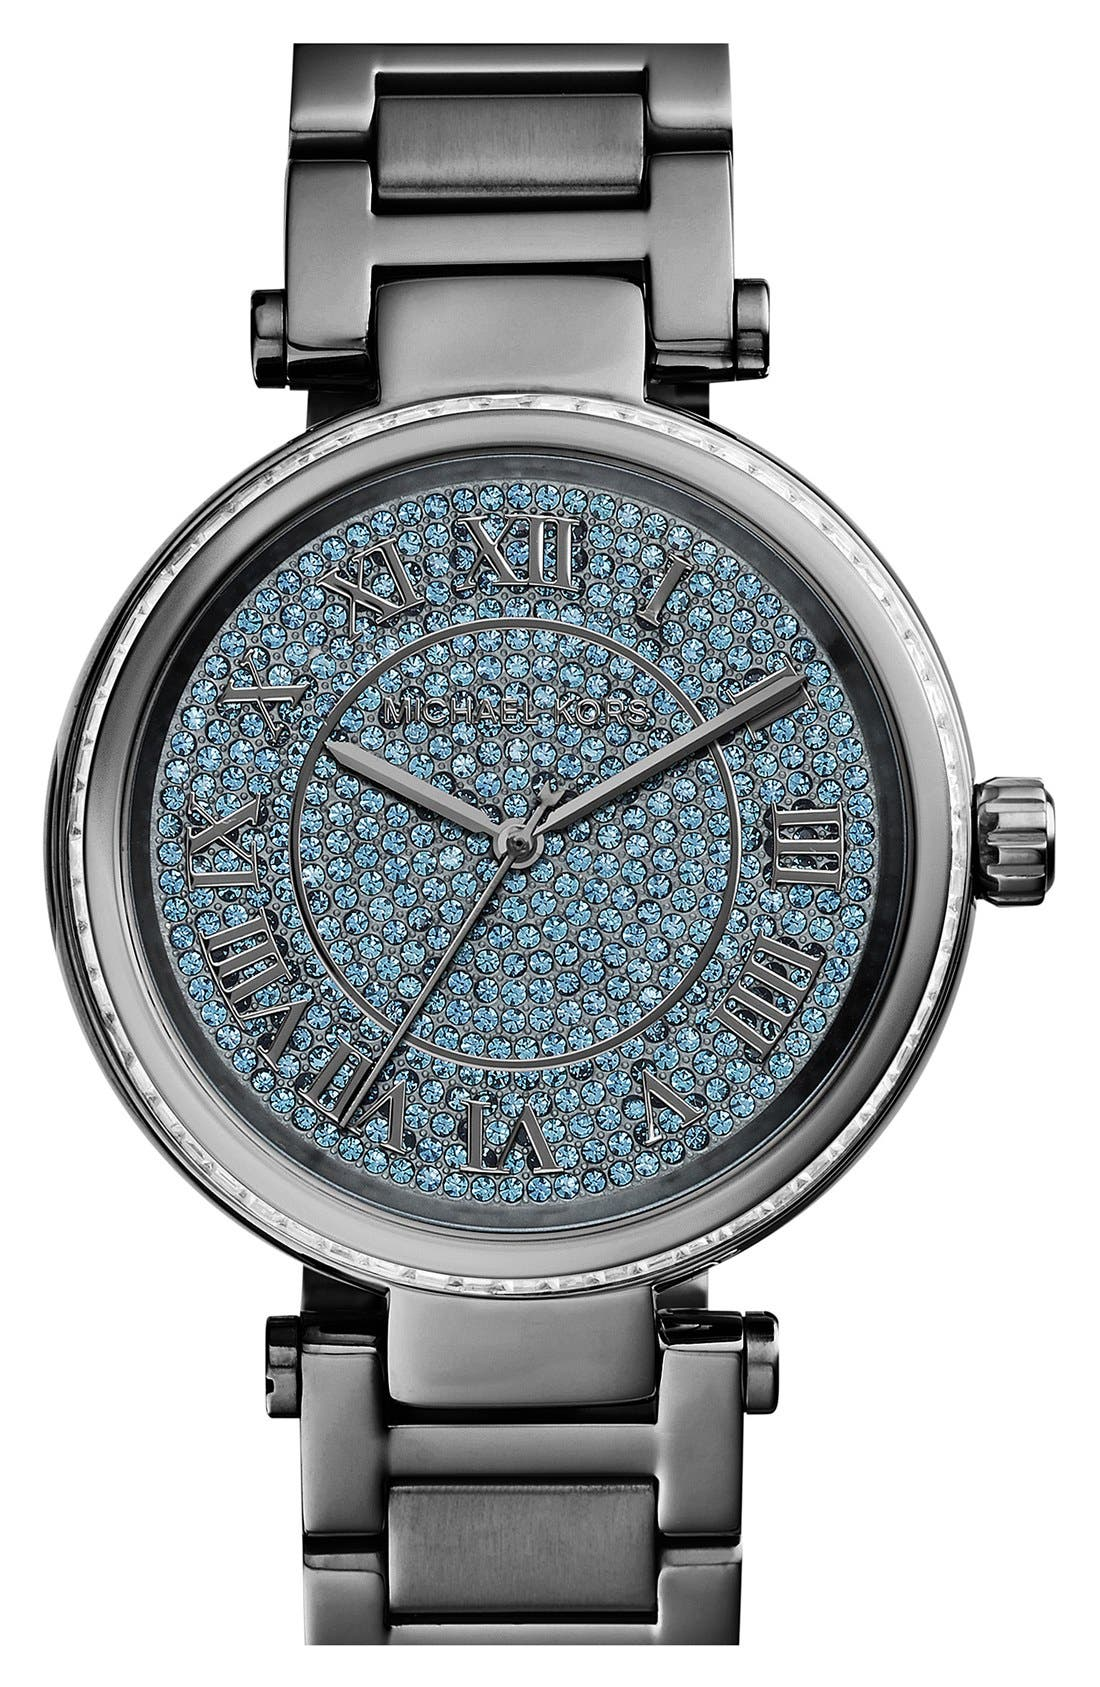 Main Image - Michael Kors 'Skylar' Pavé Dial Crystal Bezel Bracelet Watch, 42mm